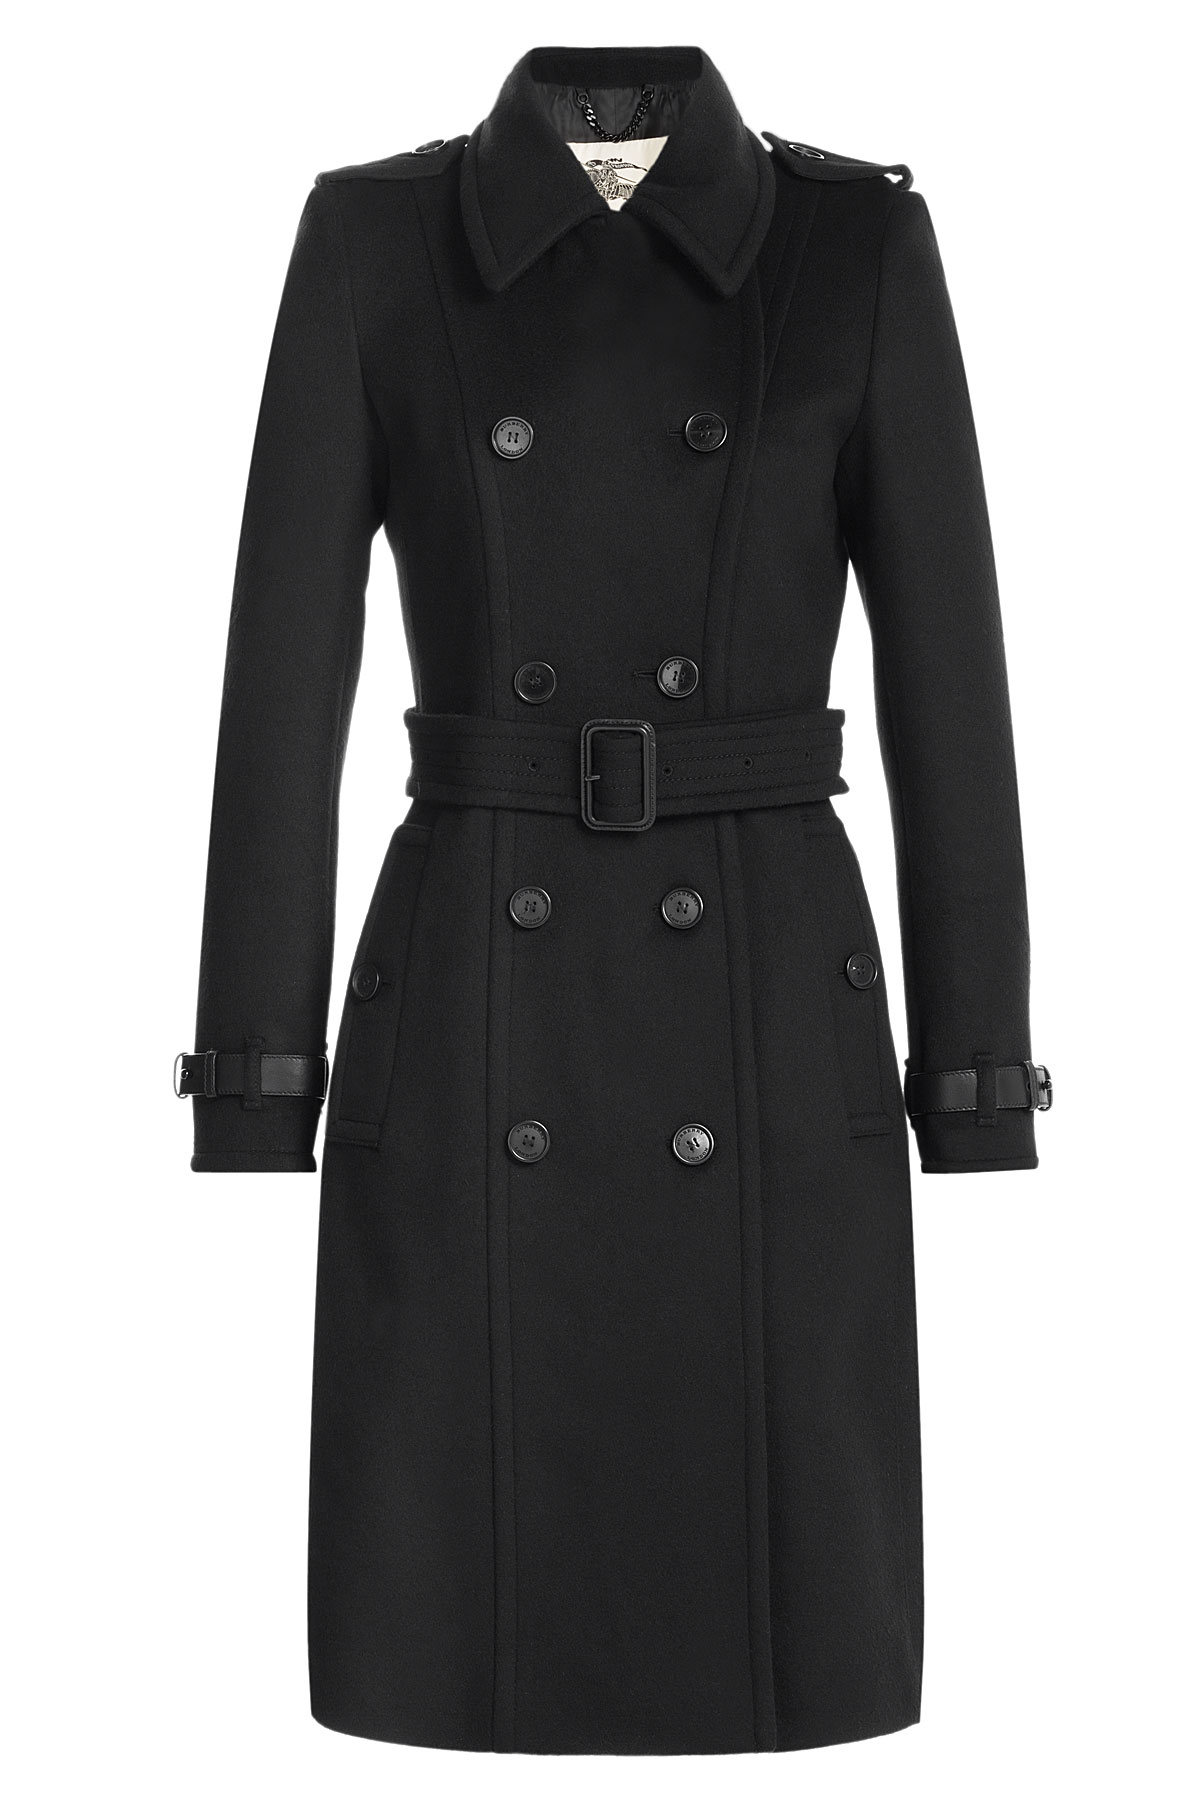 Shop the latest styles of Womens Trenchcoat Coats at Macys. Check out our designer collection of chic coats including peacoats, trench coats, puffer coats and more! Macy's Presents: The Edit- A curated mix of fashion and inspiration Check It Out. Wool & Wool Blend ().